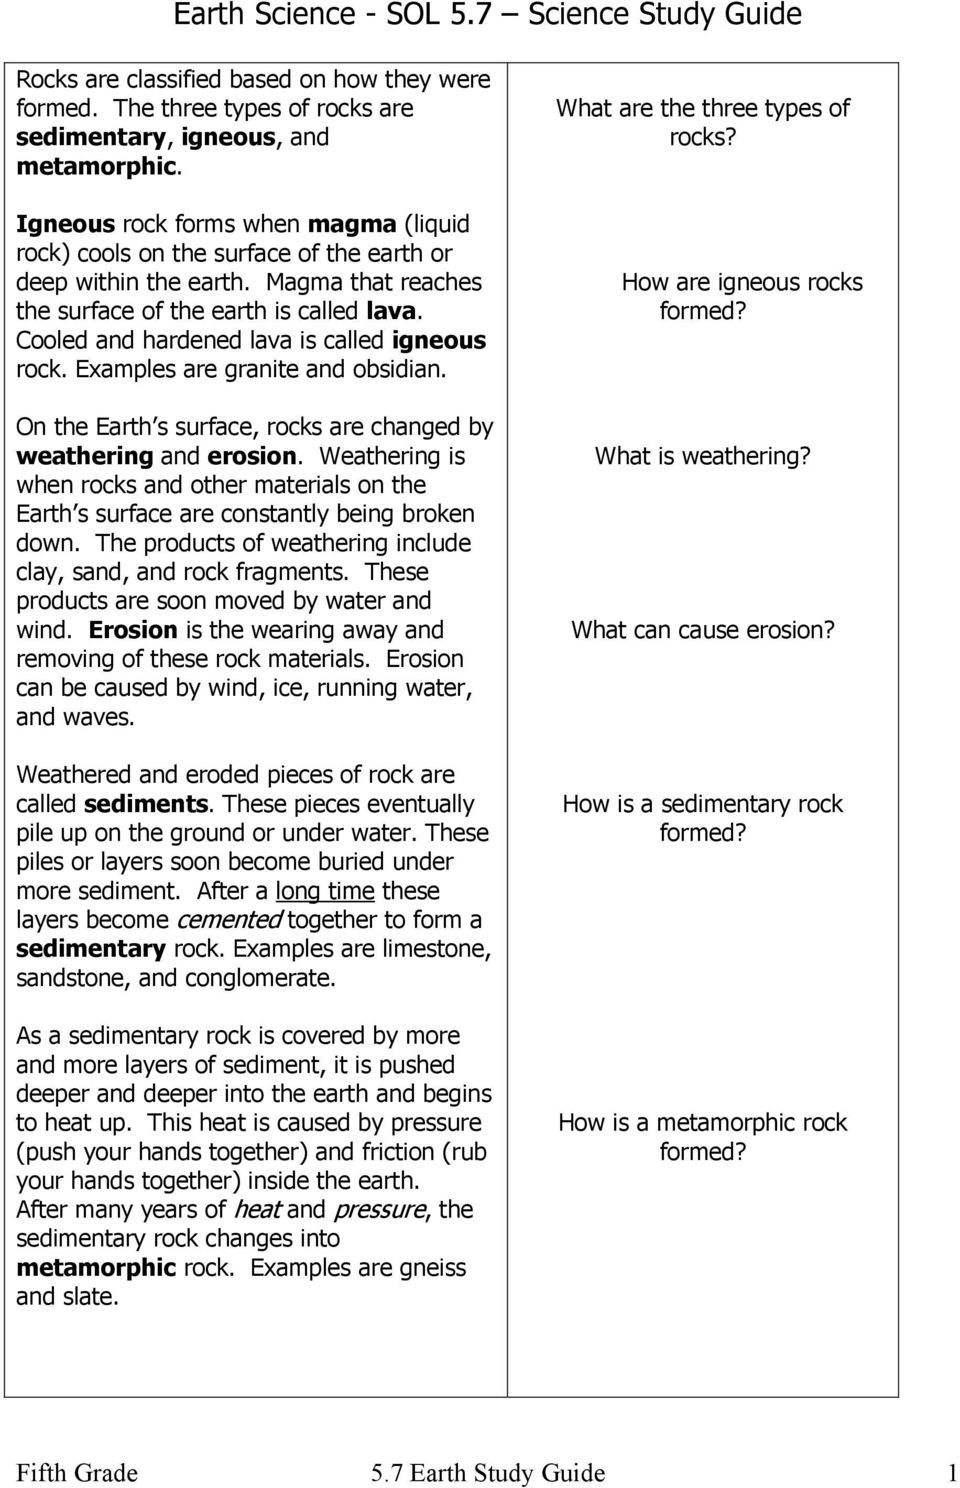 hight resolution of Earth Science - SOL 5.7 Science Study Guide - PDF Free Download